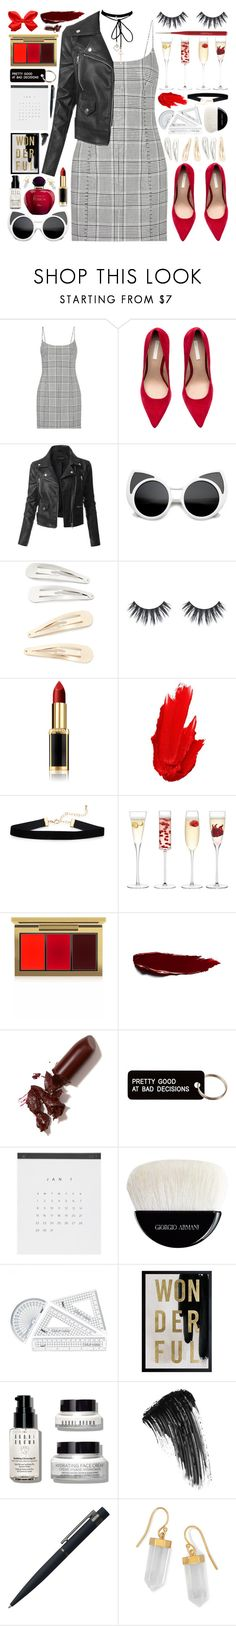 """""""168. Cause I'm tired of the fake love"""" by misspyromaniac ❤ liked on Polyvore featuring Alexander Wang, LE3NO, Kitsch, L'Oréal Paris, Maybelline, LSA International, MAC Cosmetics, LAQA & Co., Various Projects and Giorgio Armani"""